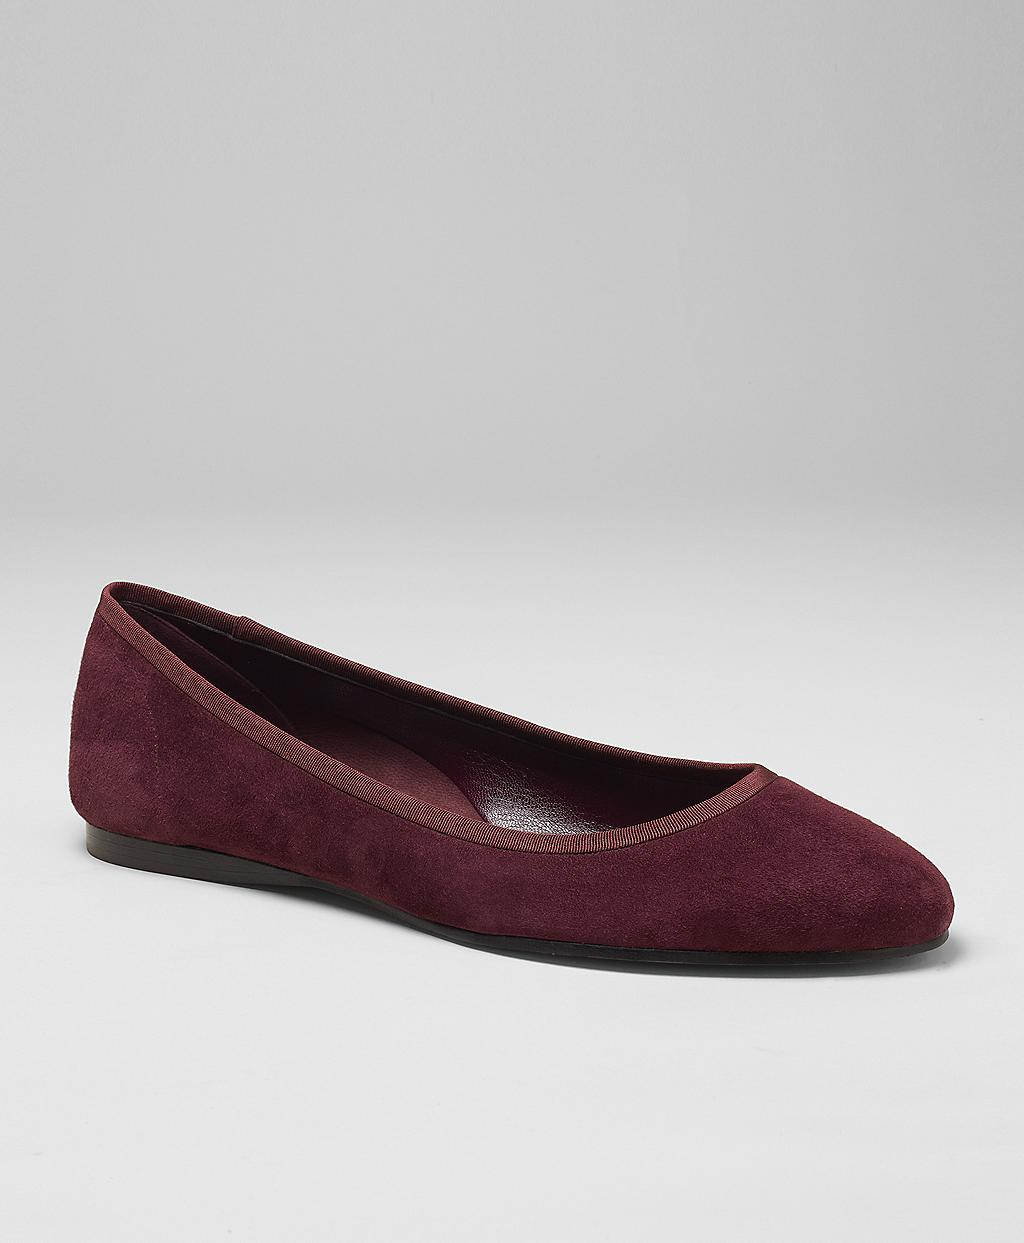 a48a1dd7693 Lyst - Brooks Brothers Kid Suede Ballet Flat in Red